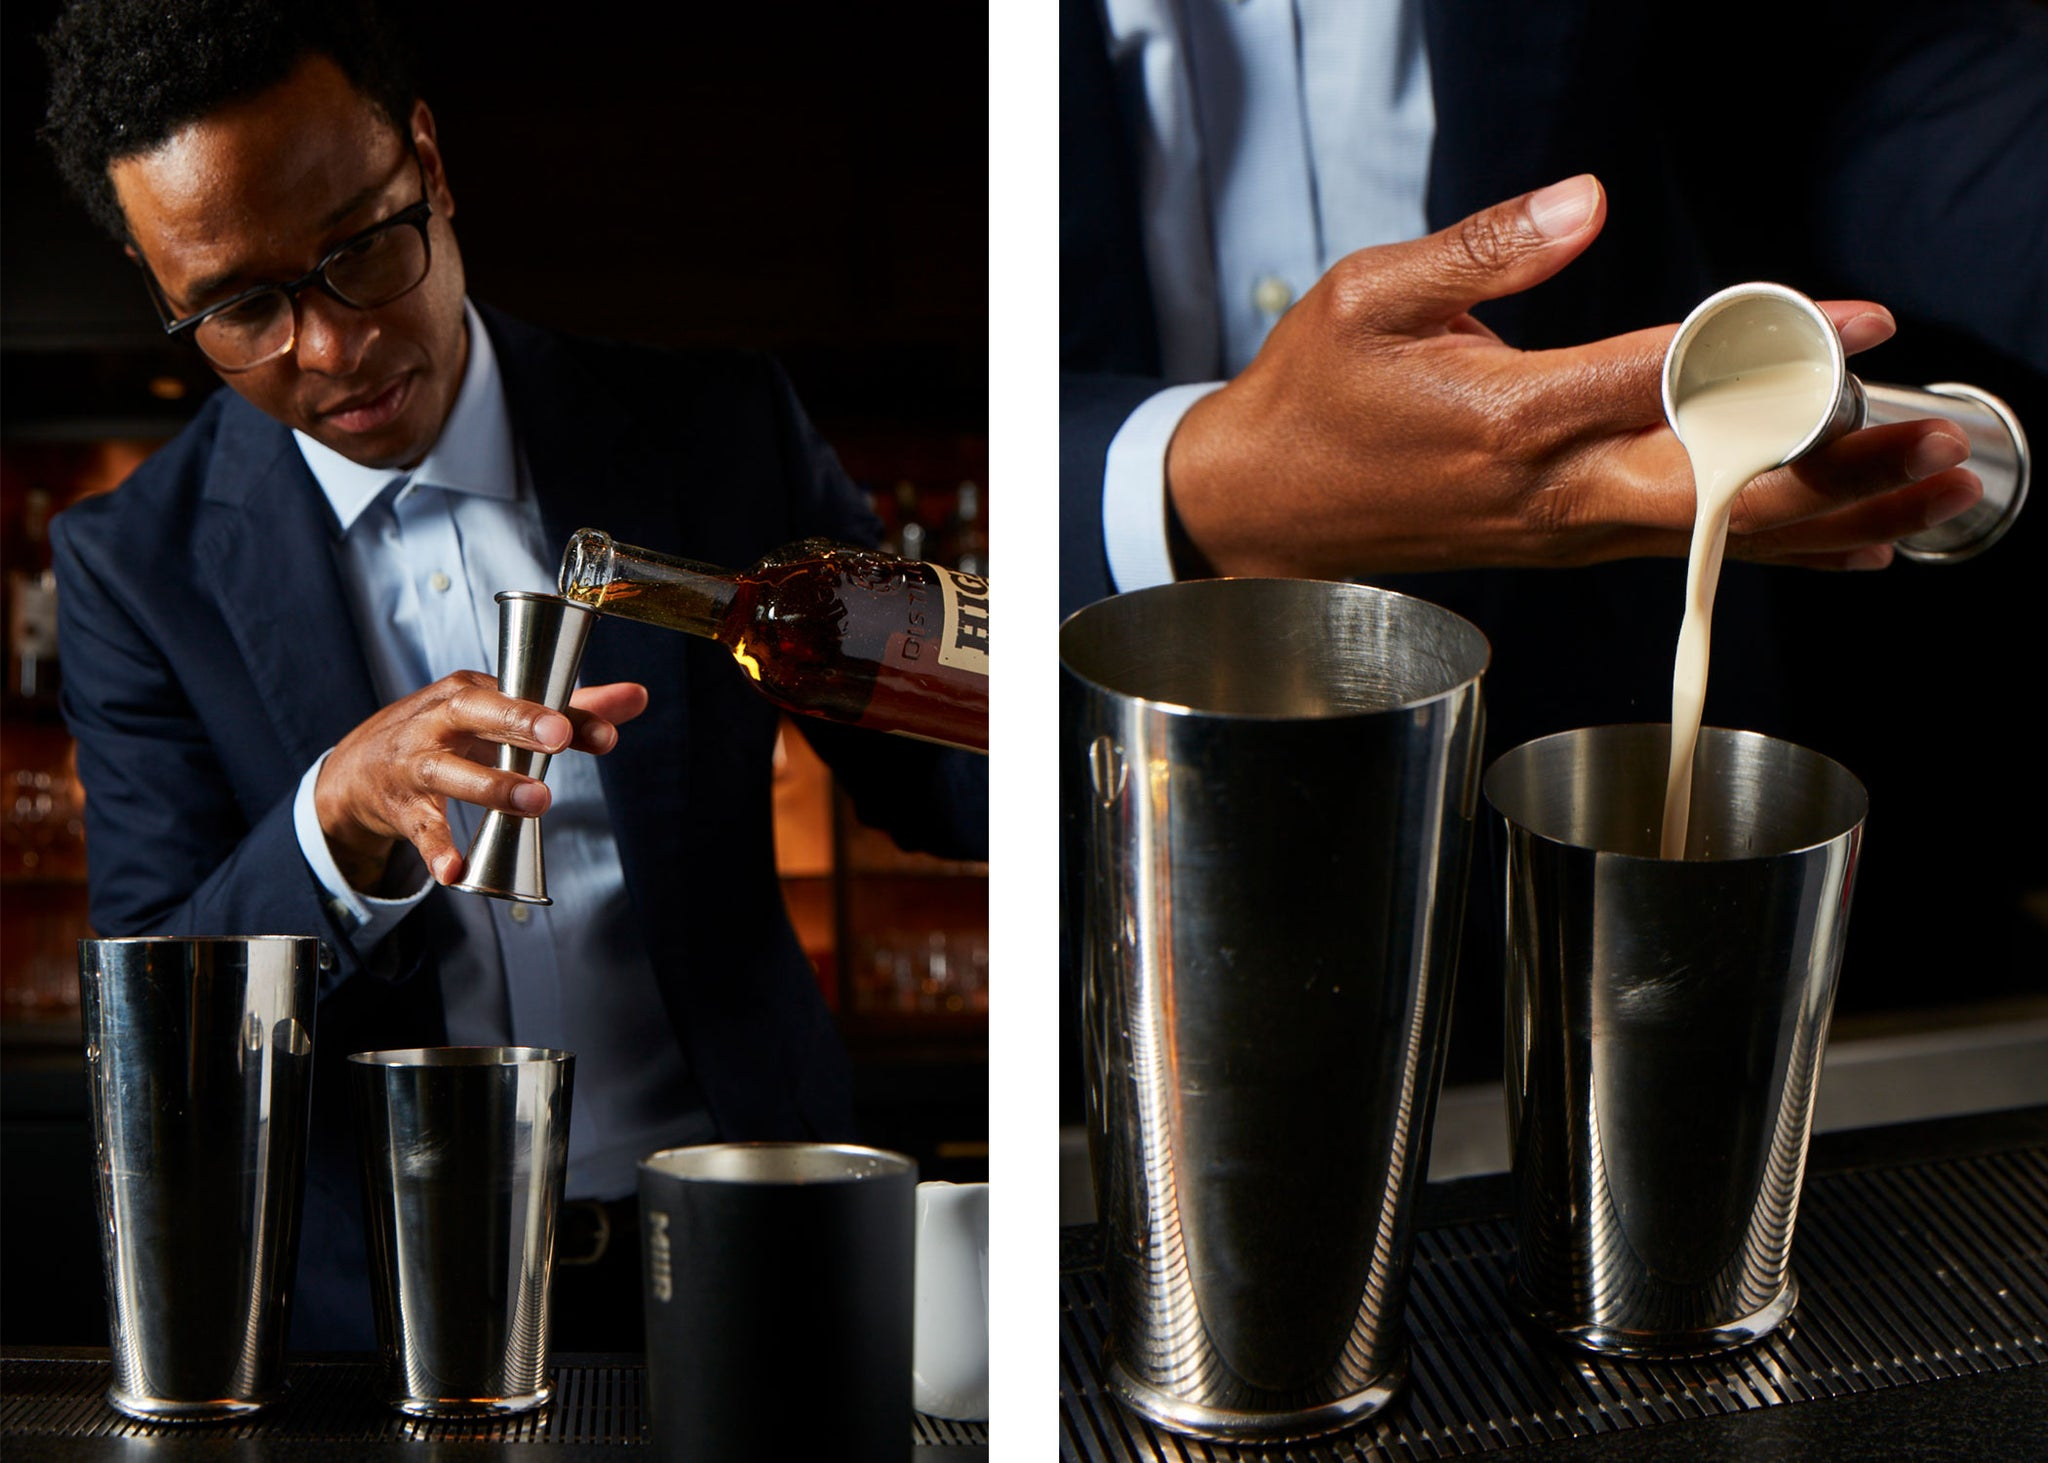 Jermaine Whitehead making cocktails